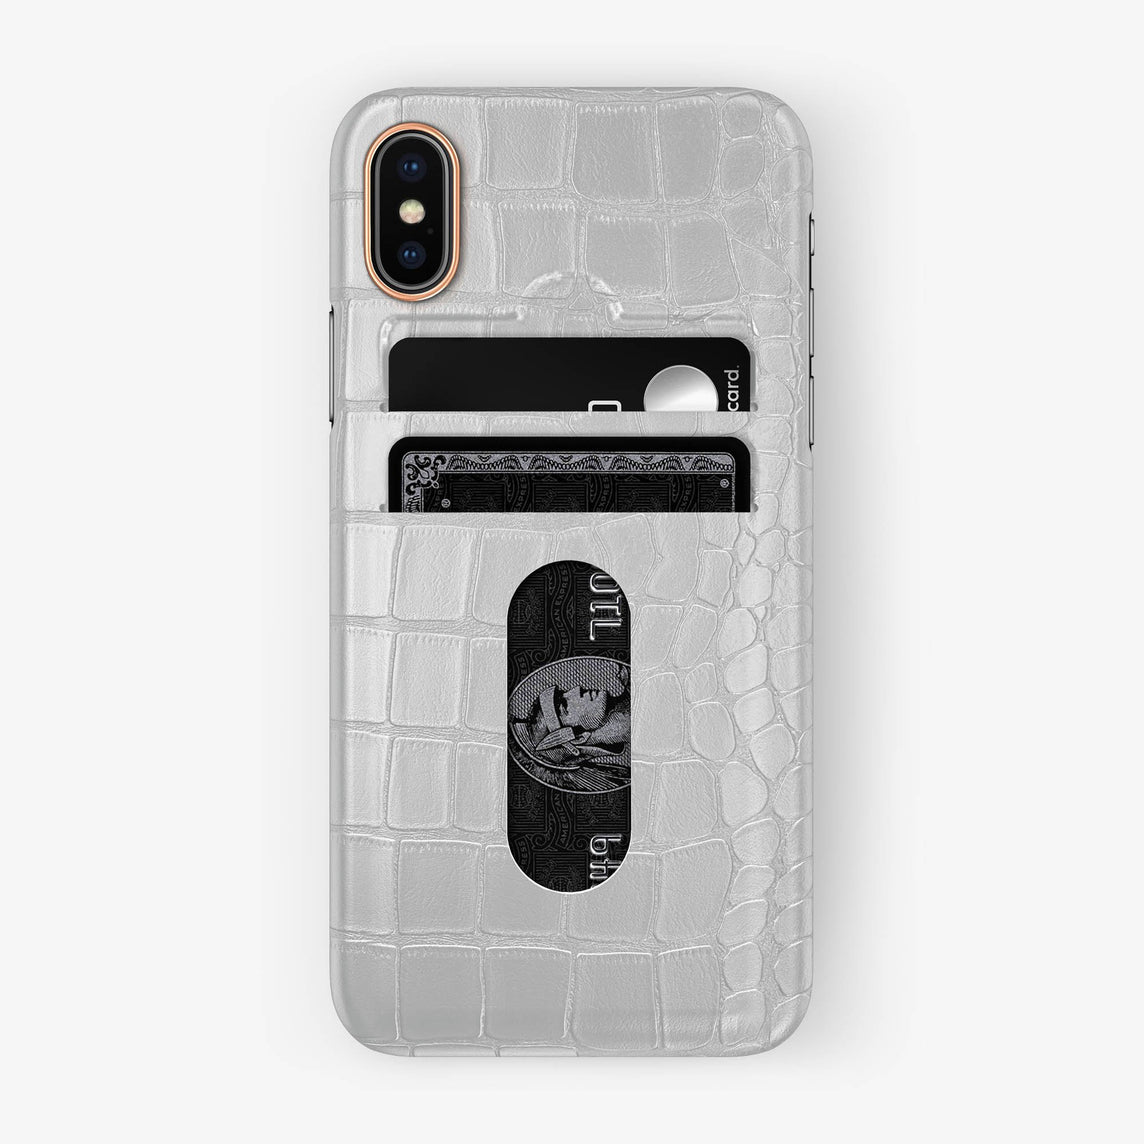 Alligator Card Holder Case iPhone X/Xs | White - Rose Gold with-personalization